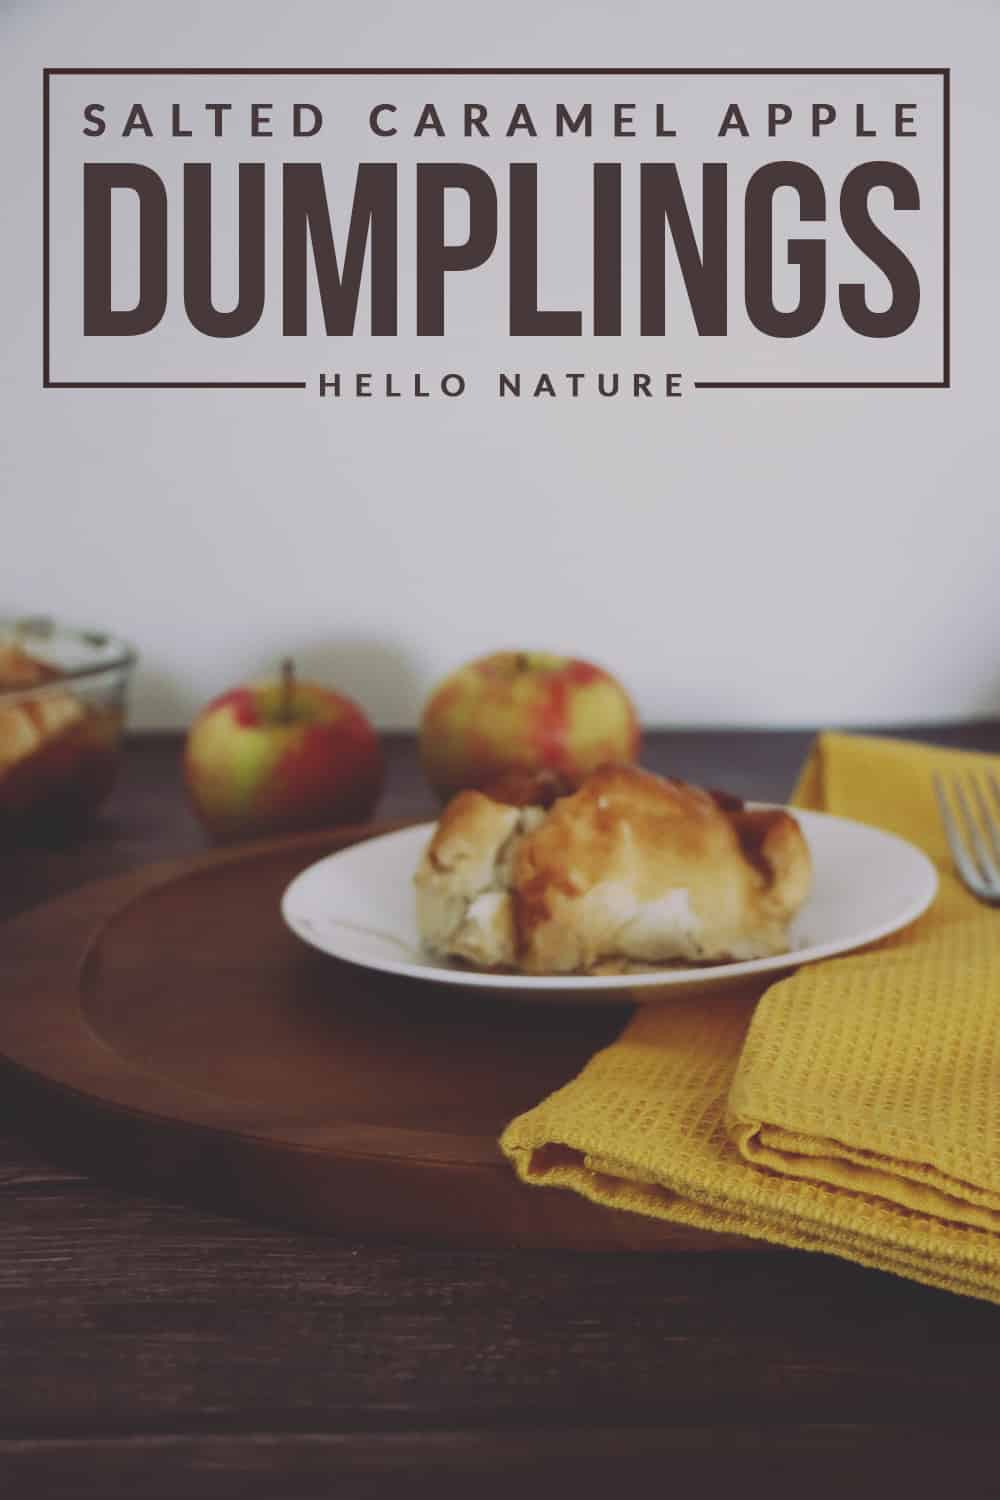 This warm and gooey salted caramel apple dumplings just screams comfort food on a crisp Autumn day. Perfect with ice cream or on it's own!